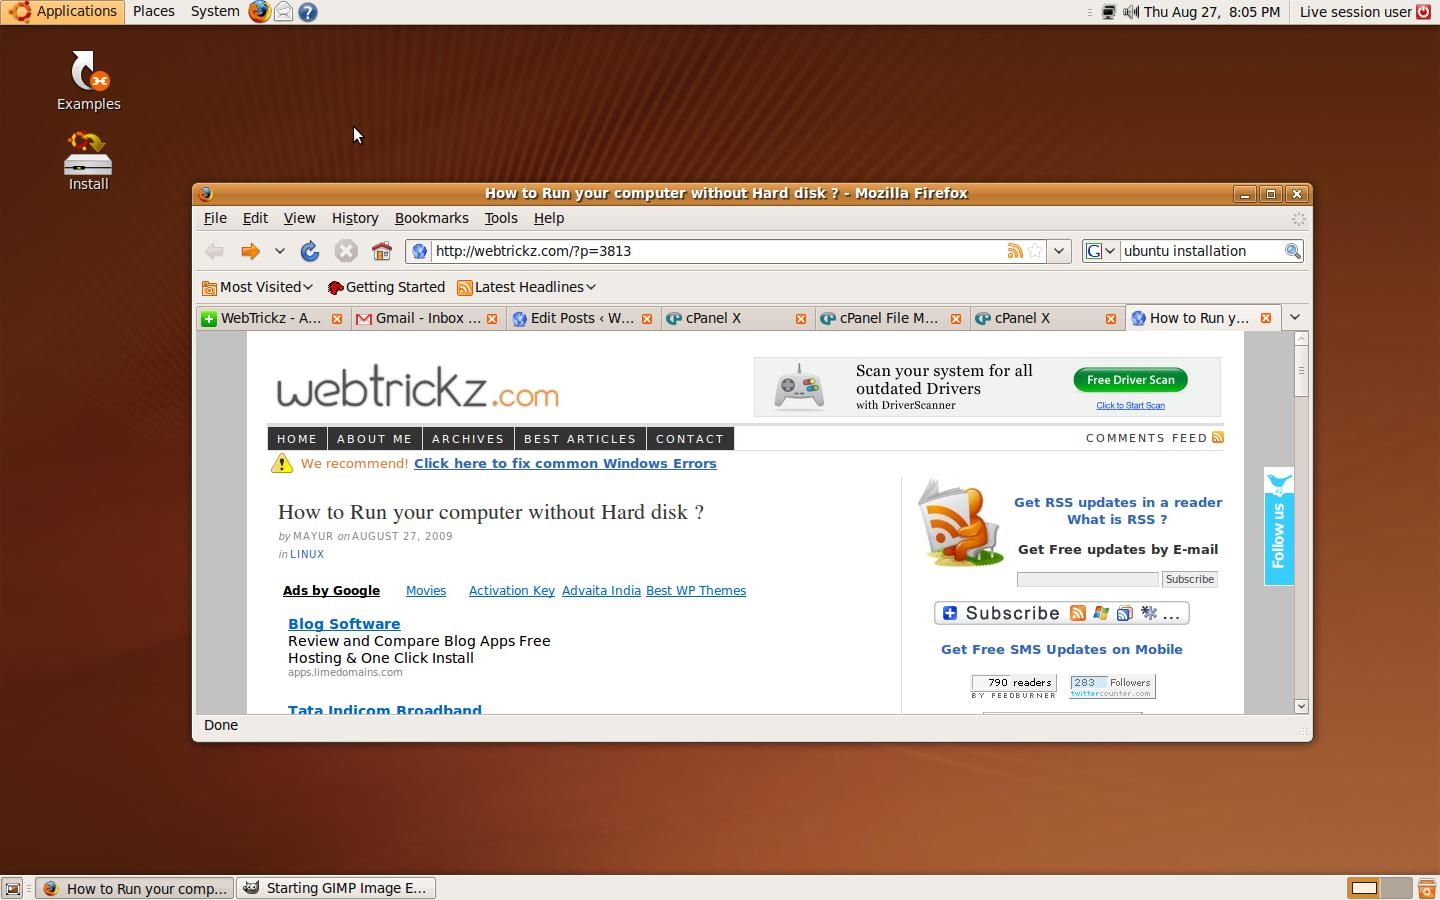 Main Ubuntu home window